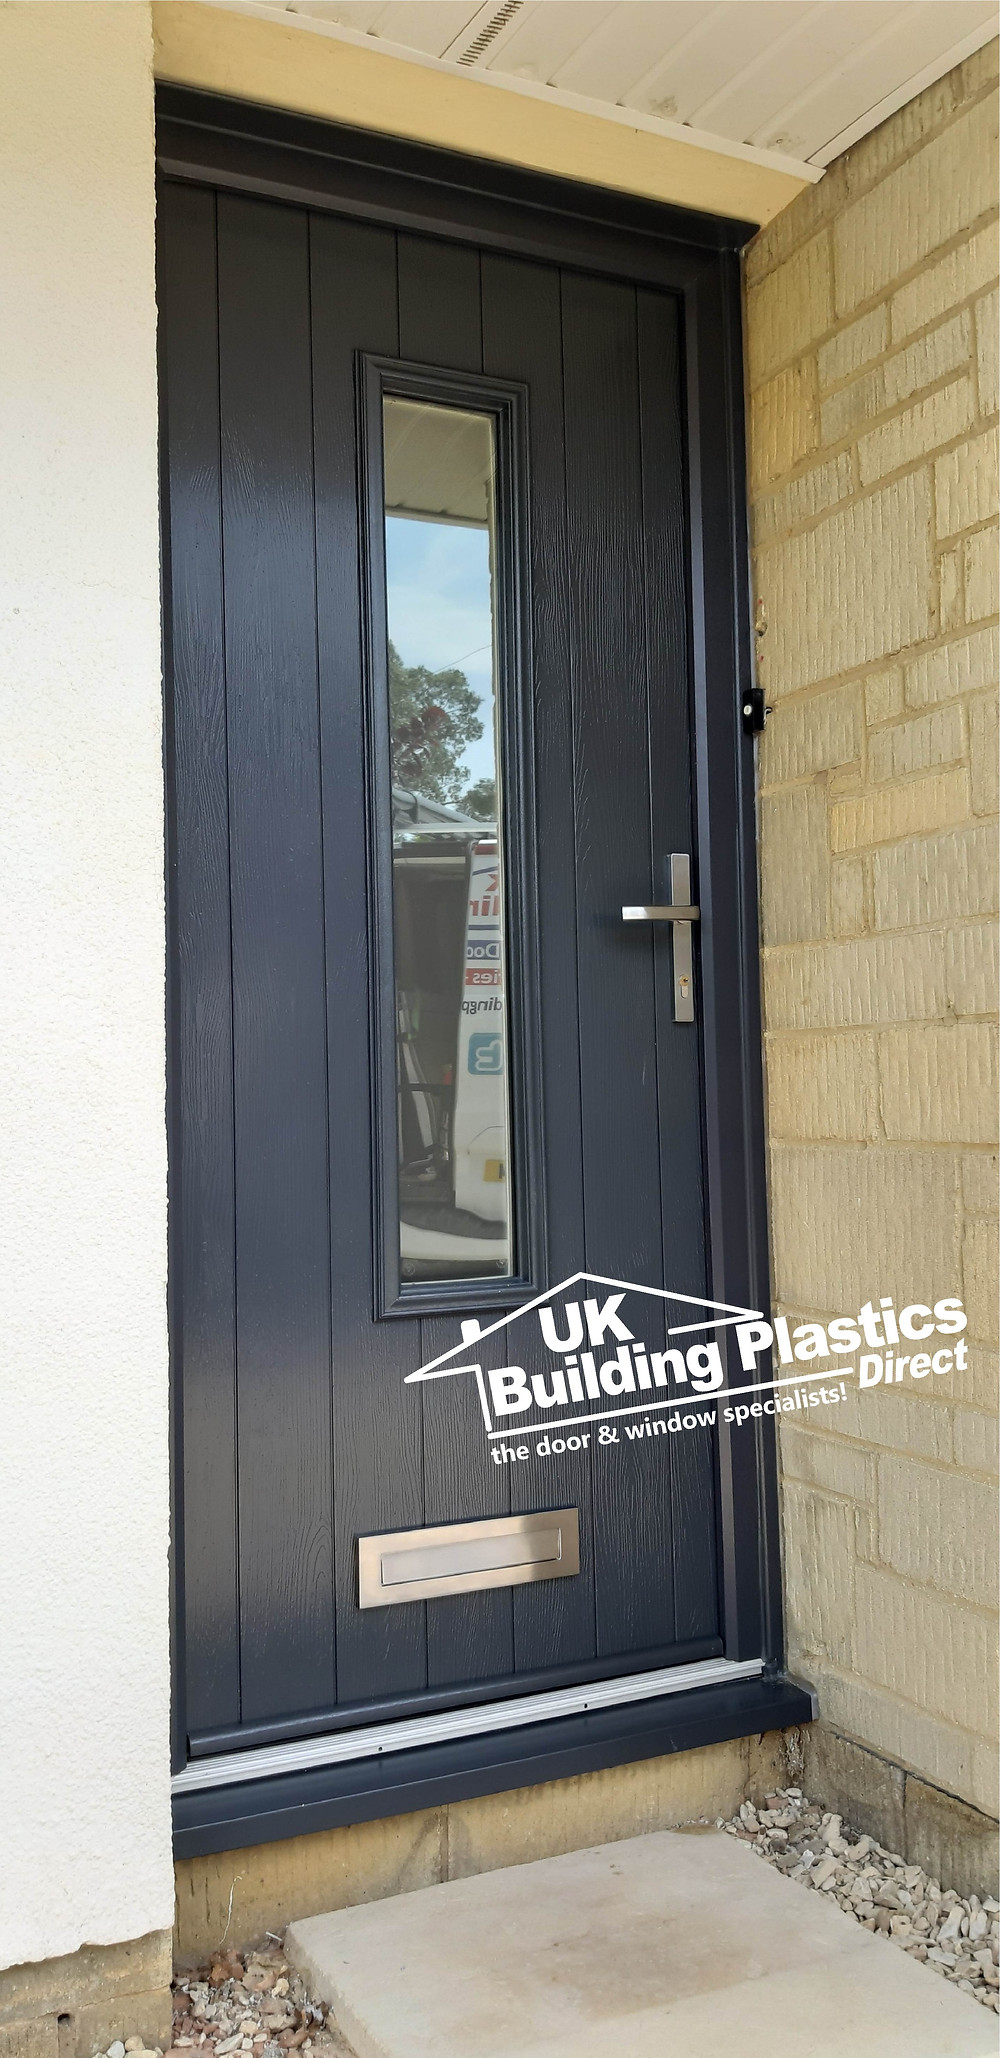 Solidor - Witney - Oxford -UK Building Plastics Direct